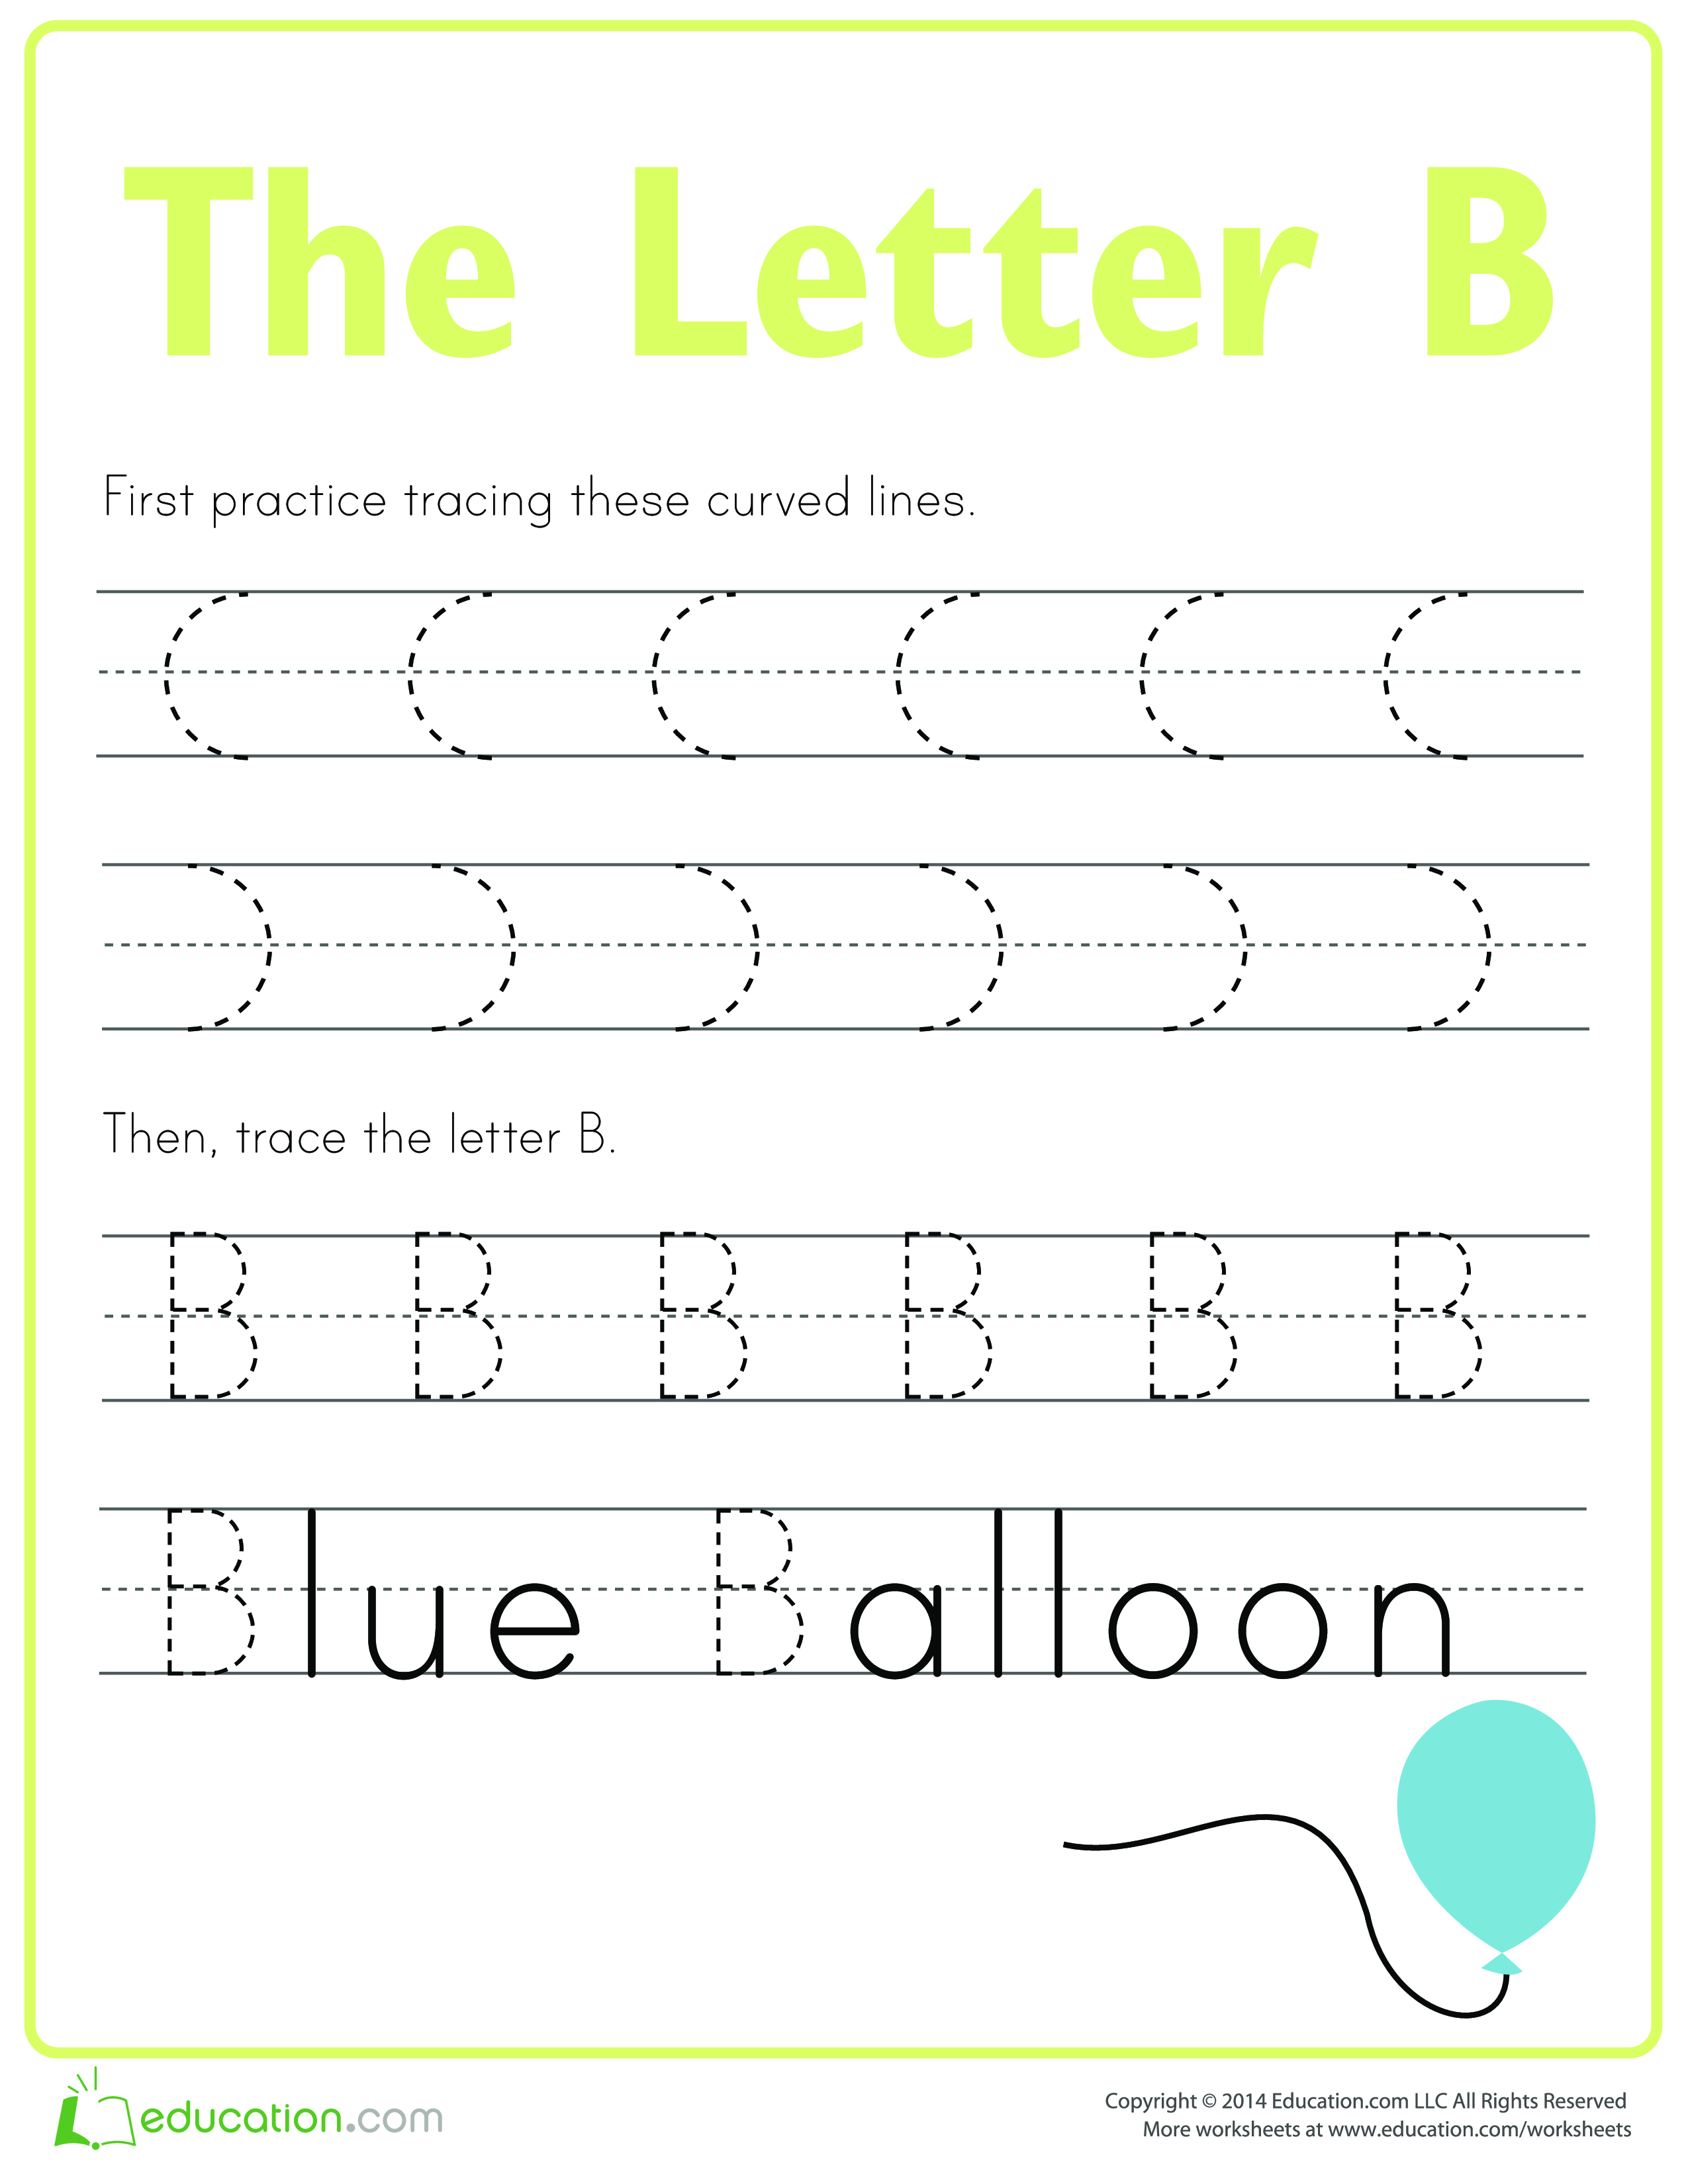 Free practice to write letter b templates at allbusinesstemplates practice to write letter b main image download template spiritdancerdesigns Images